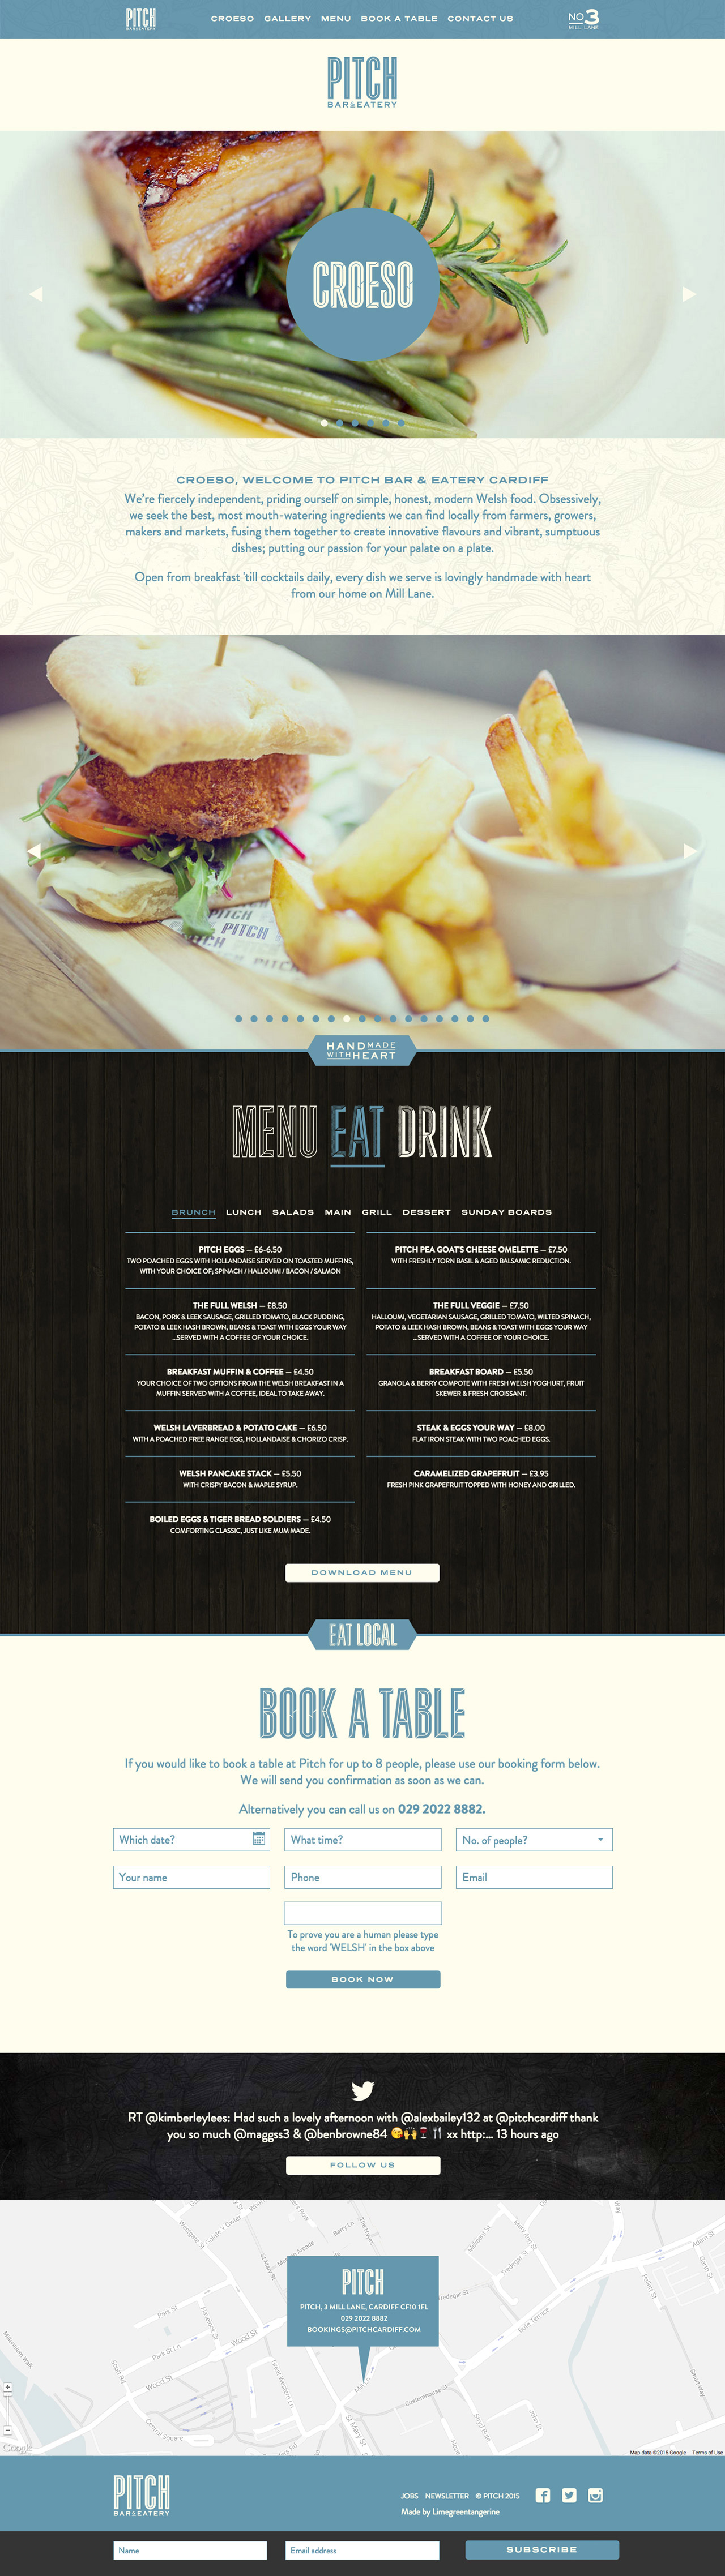 Pitch Bar & Eatery Website Screenshot